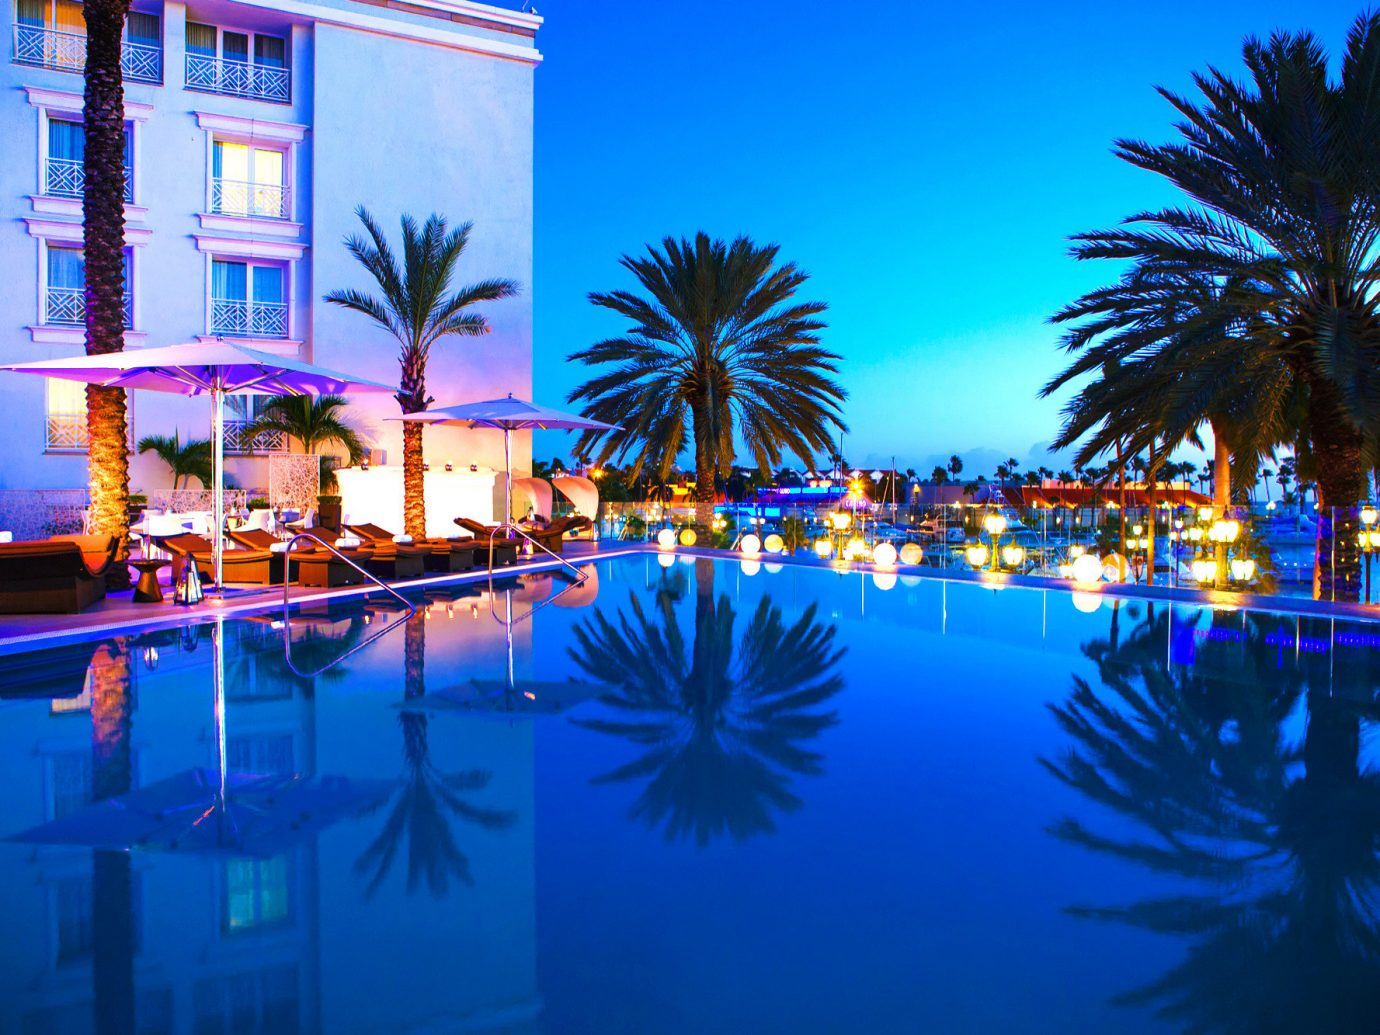 Beachfront Budget Hotels Nightlife Pool tree outdoor swimming pool Resort night light palm arecales evening lit reflection marina colorful